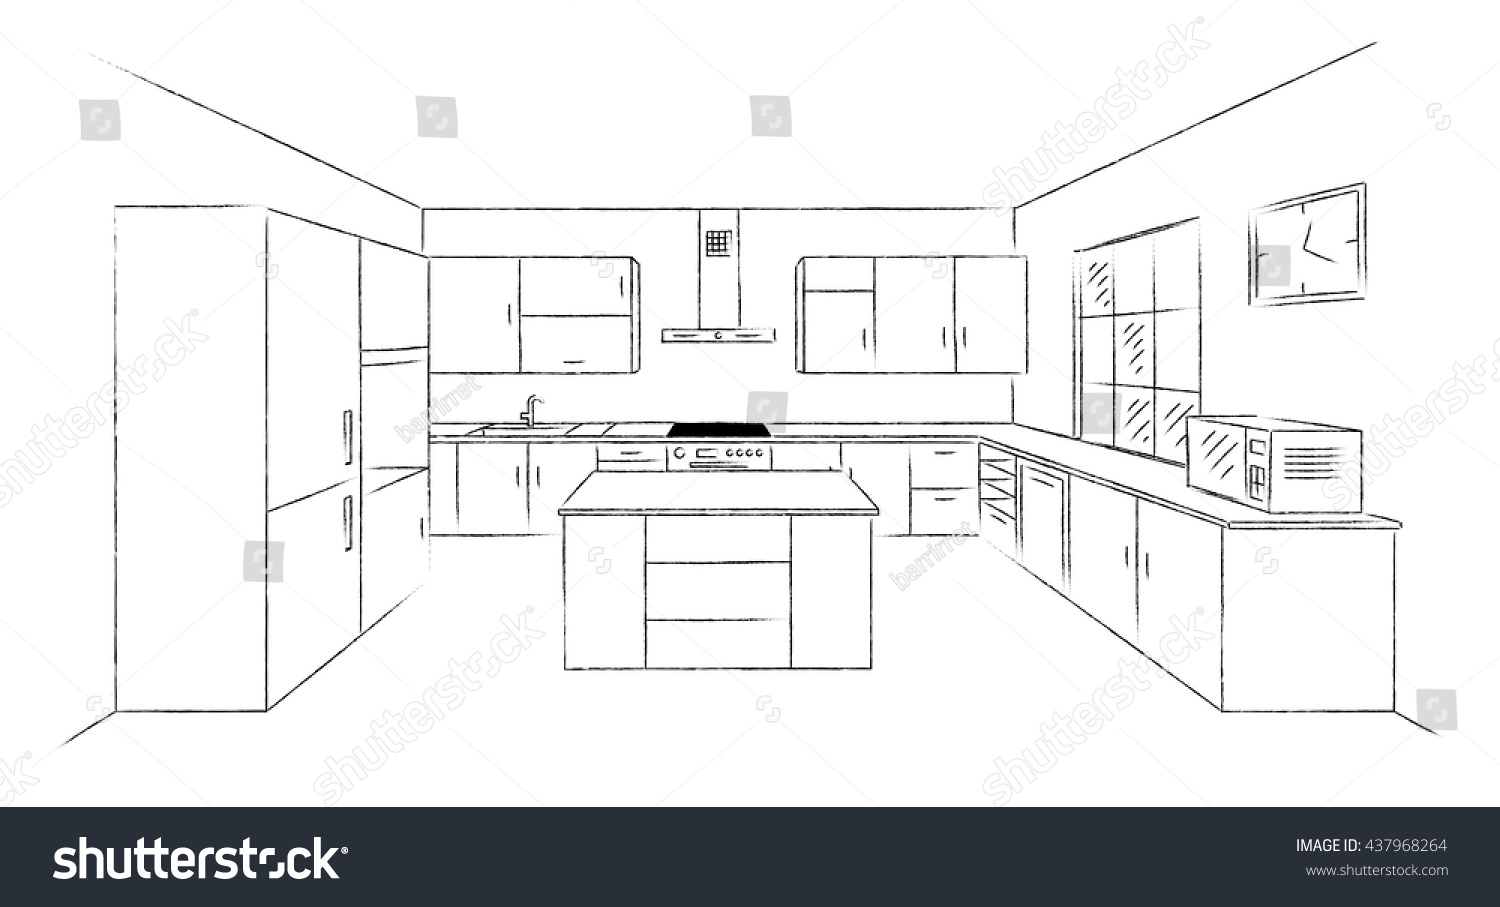 Sketch Hand Drawing Kitchen Interior Plan With Island Vector Kitchen Project Illustration In